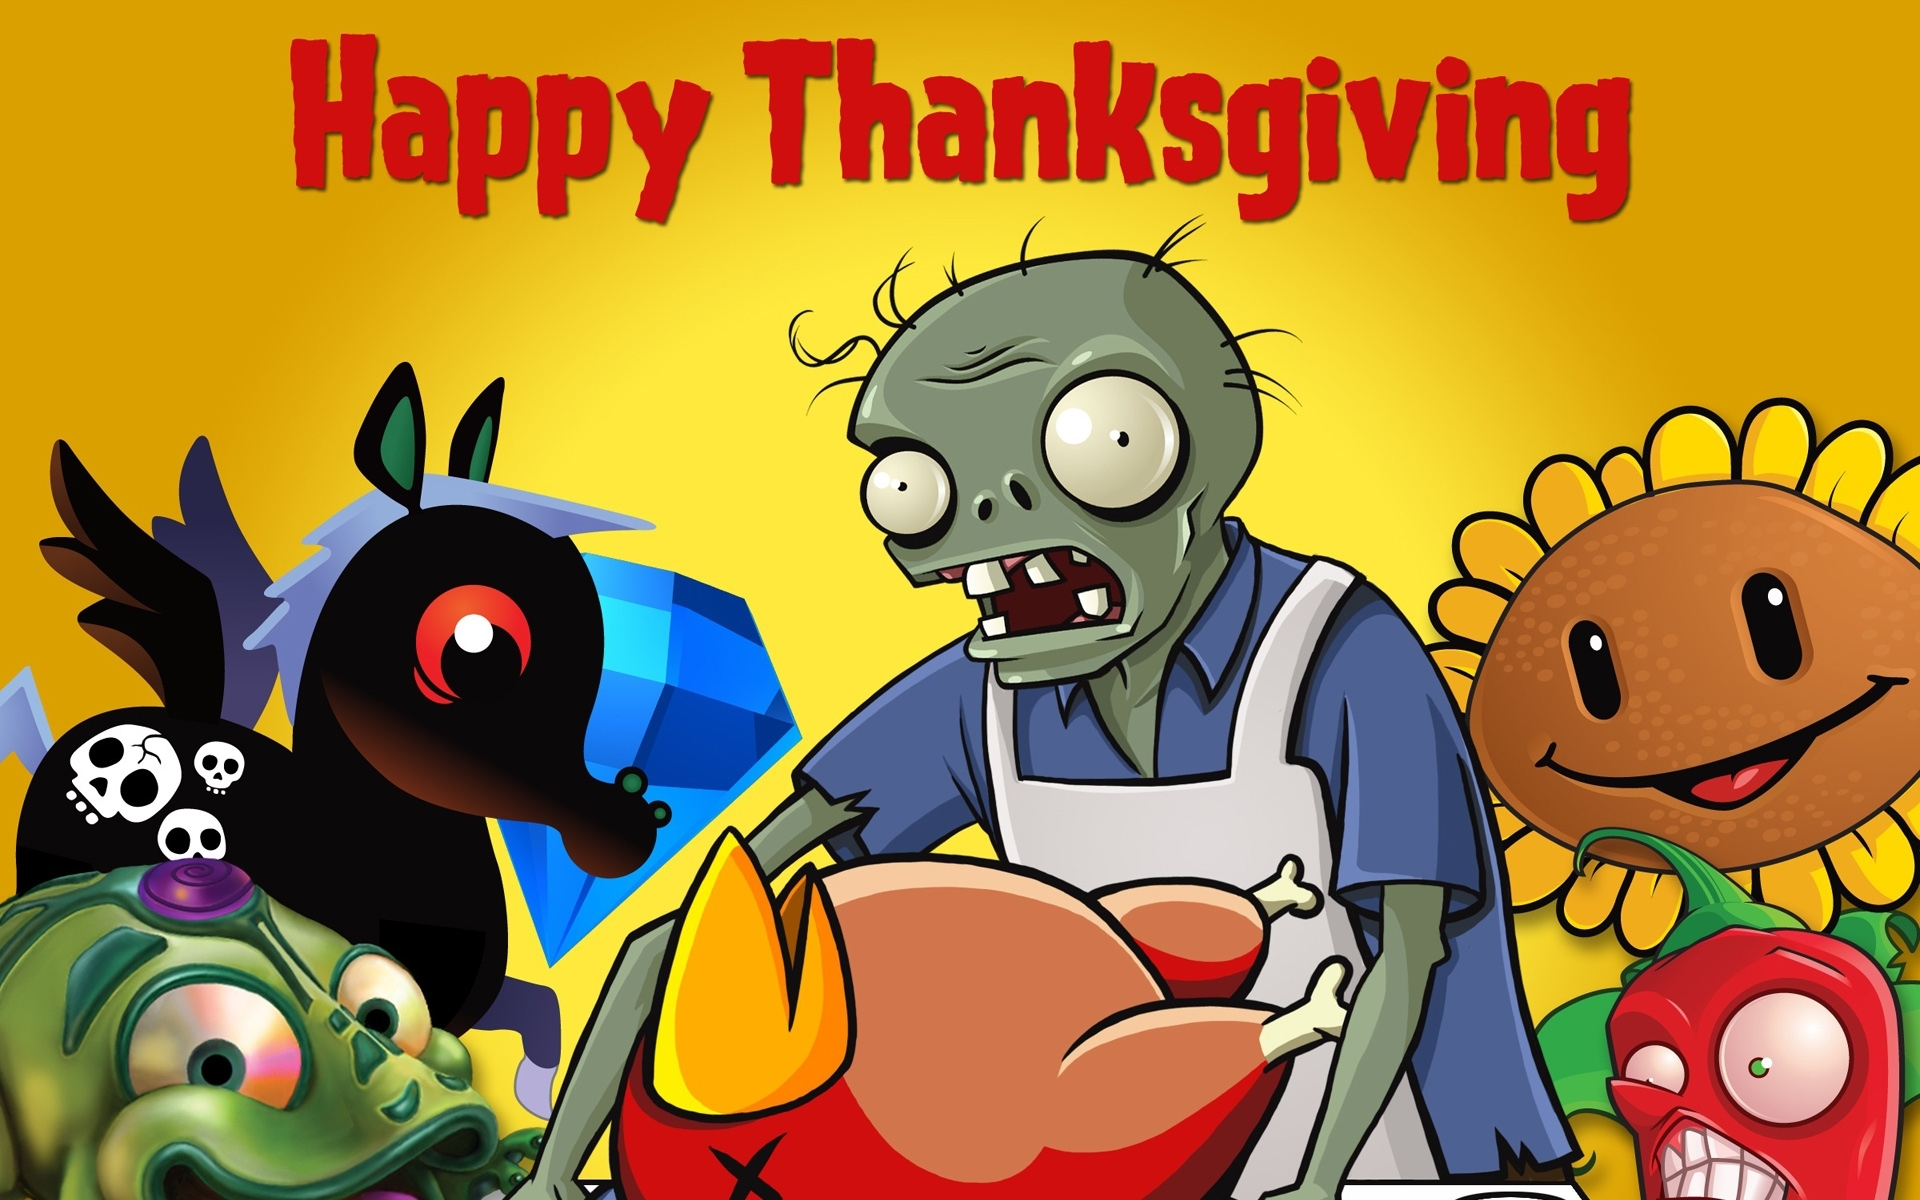 Zombie Thanksgiving Wallpaper Wallpapersafari